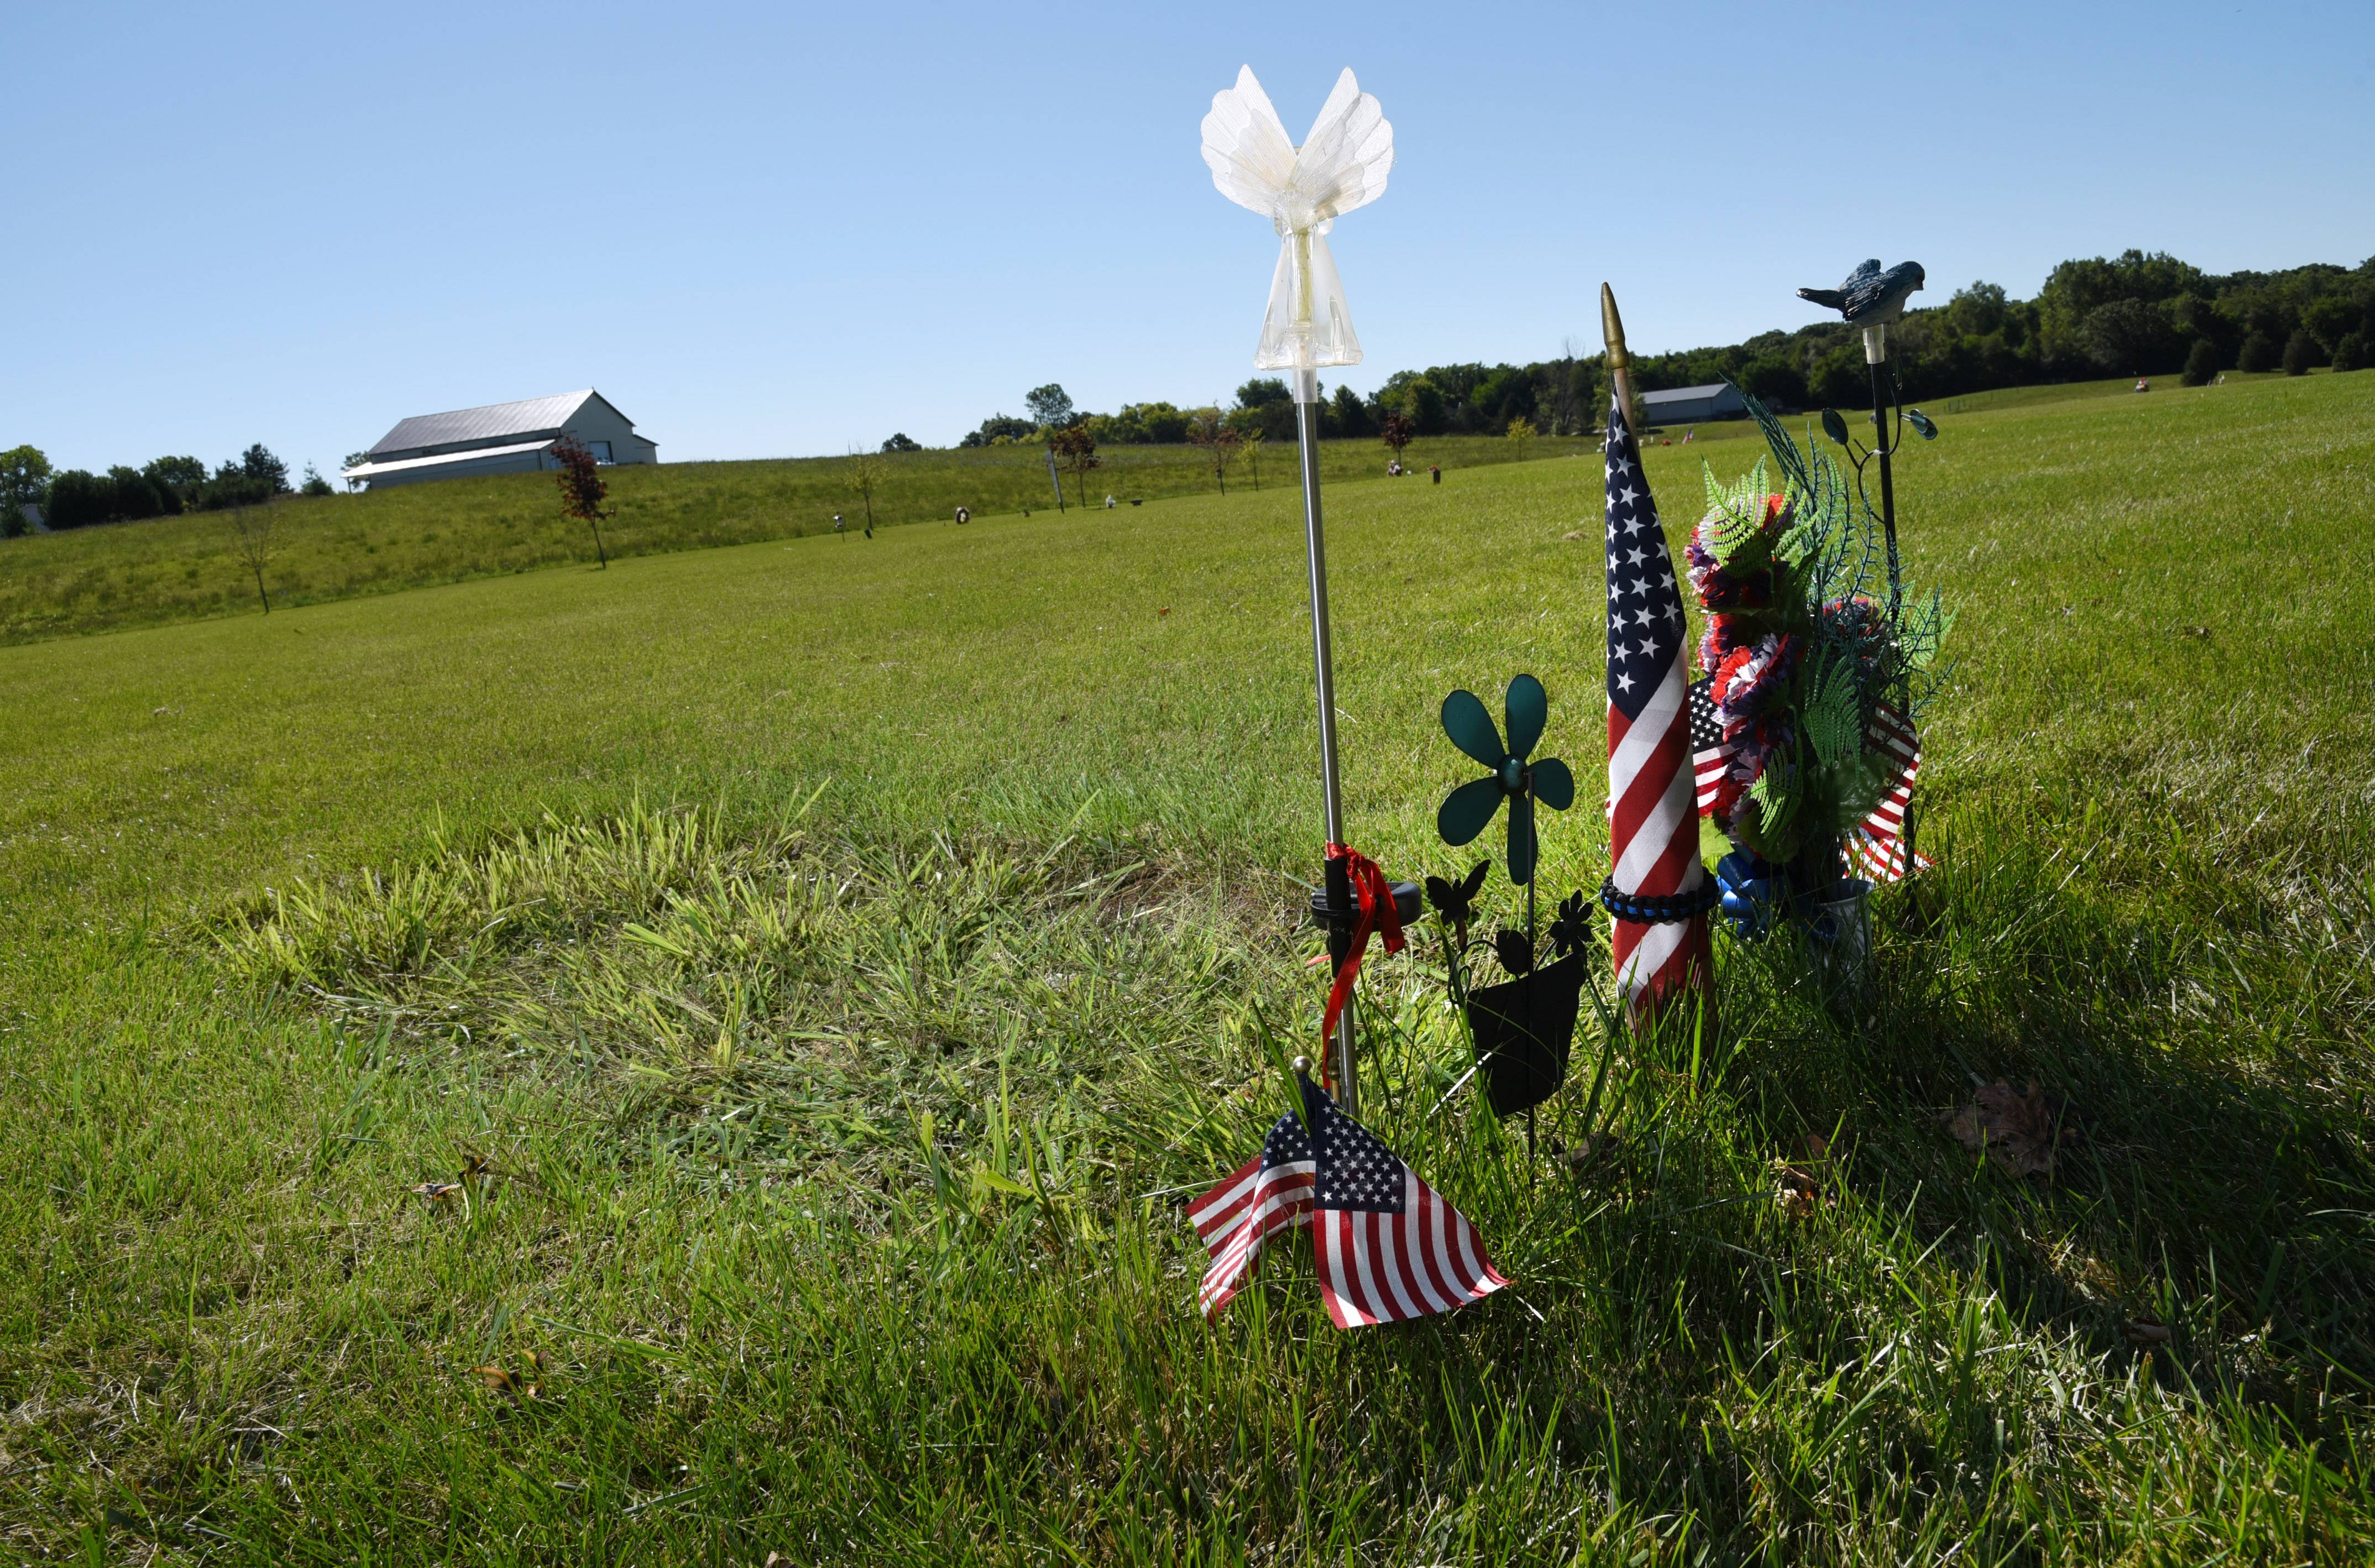 The isolation Lt. Charles Joseph Gliniewicz apparently felt at the end of his life remains a year after his death. His grave, marked only by decorations and a new crop of crab grass, sits in an empty section of Hillside Cemetery East in Antioch.